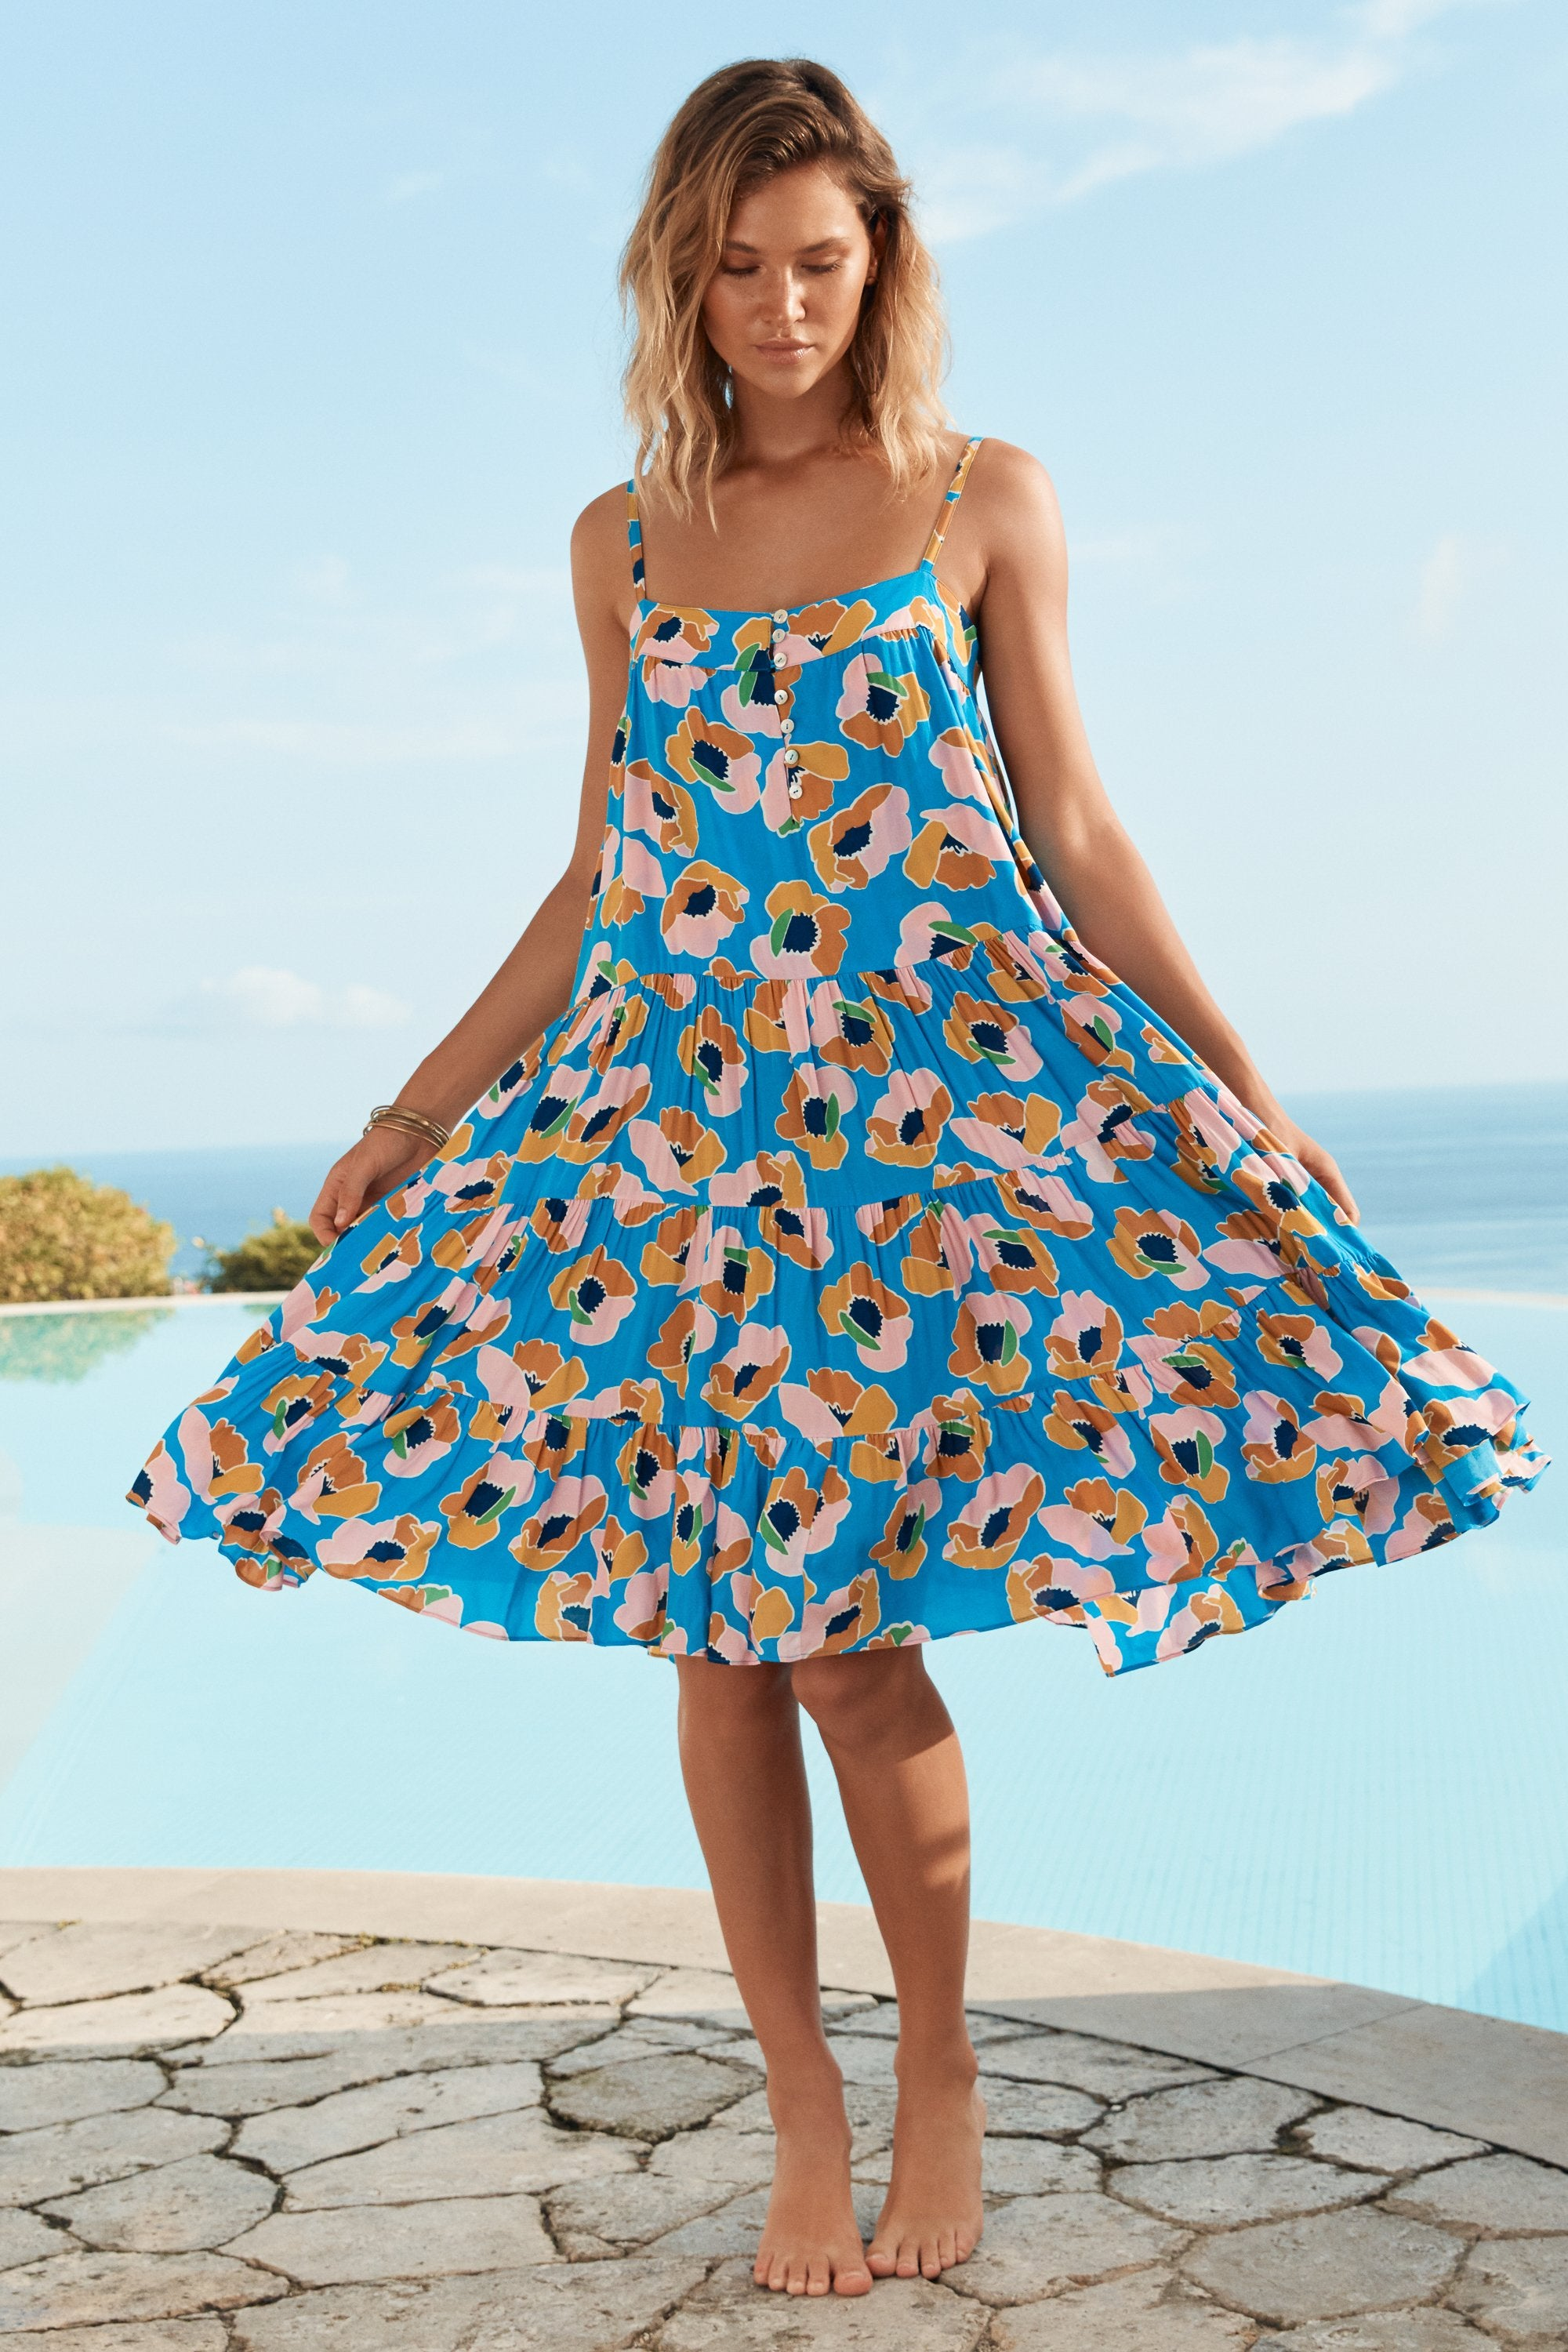 Sofia Dress In Pina Colada